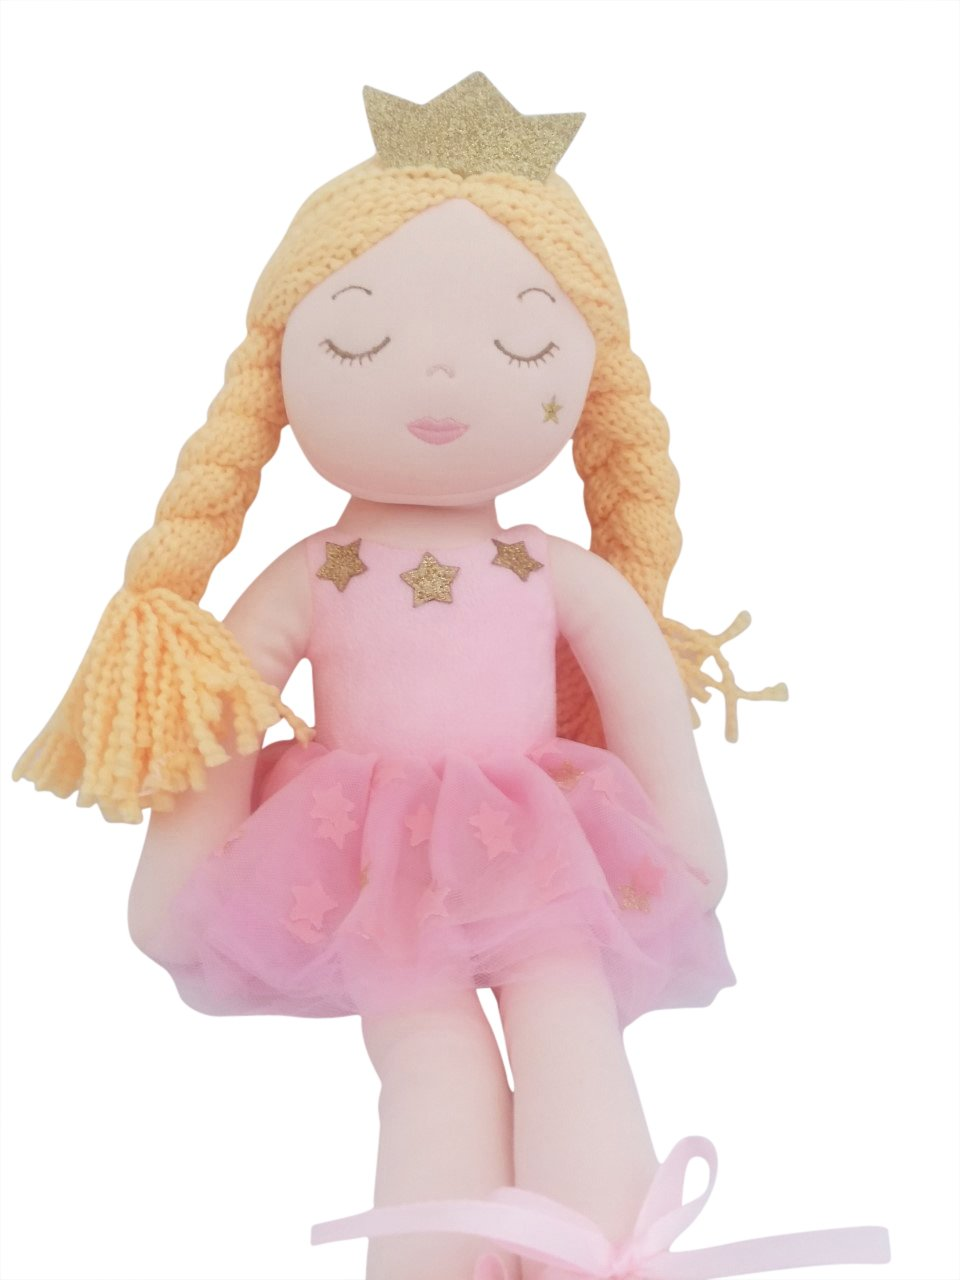 Sophia the Soft Princess Baby Doll Doll Odd Peanut